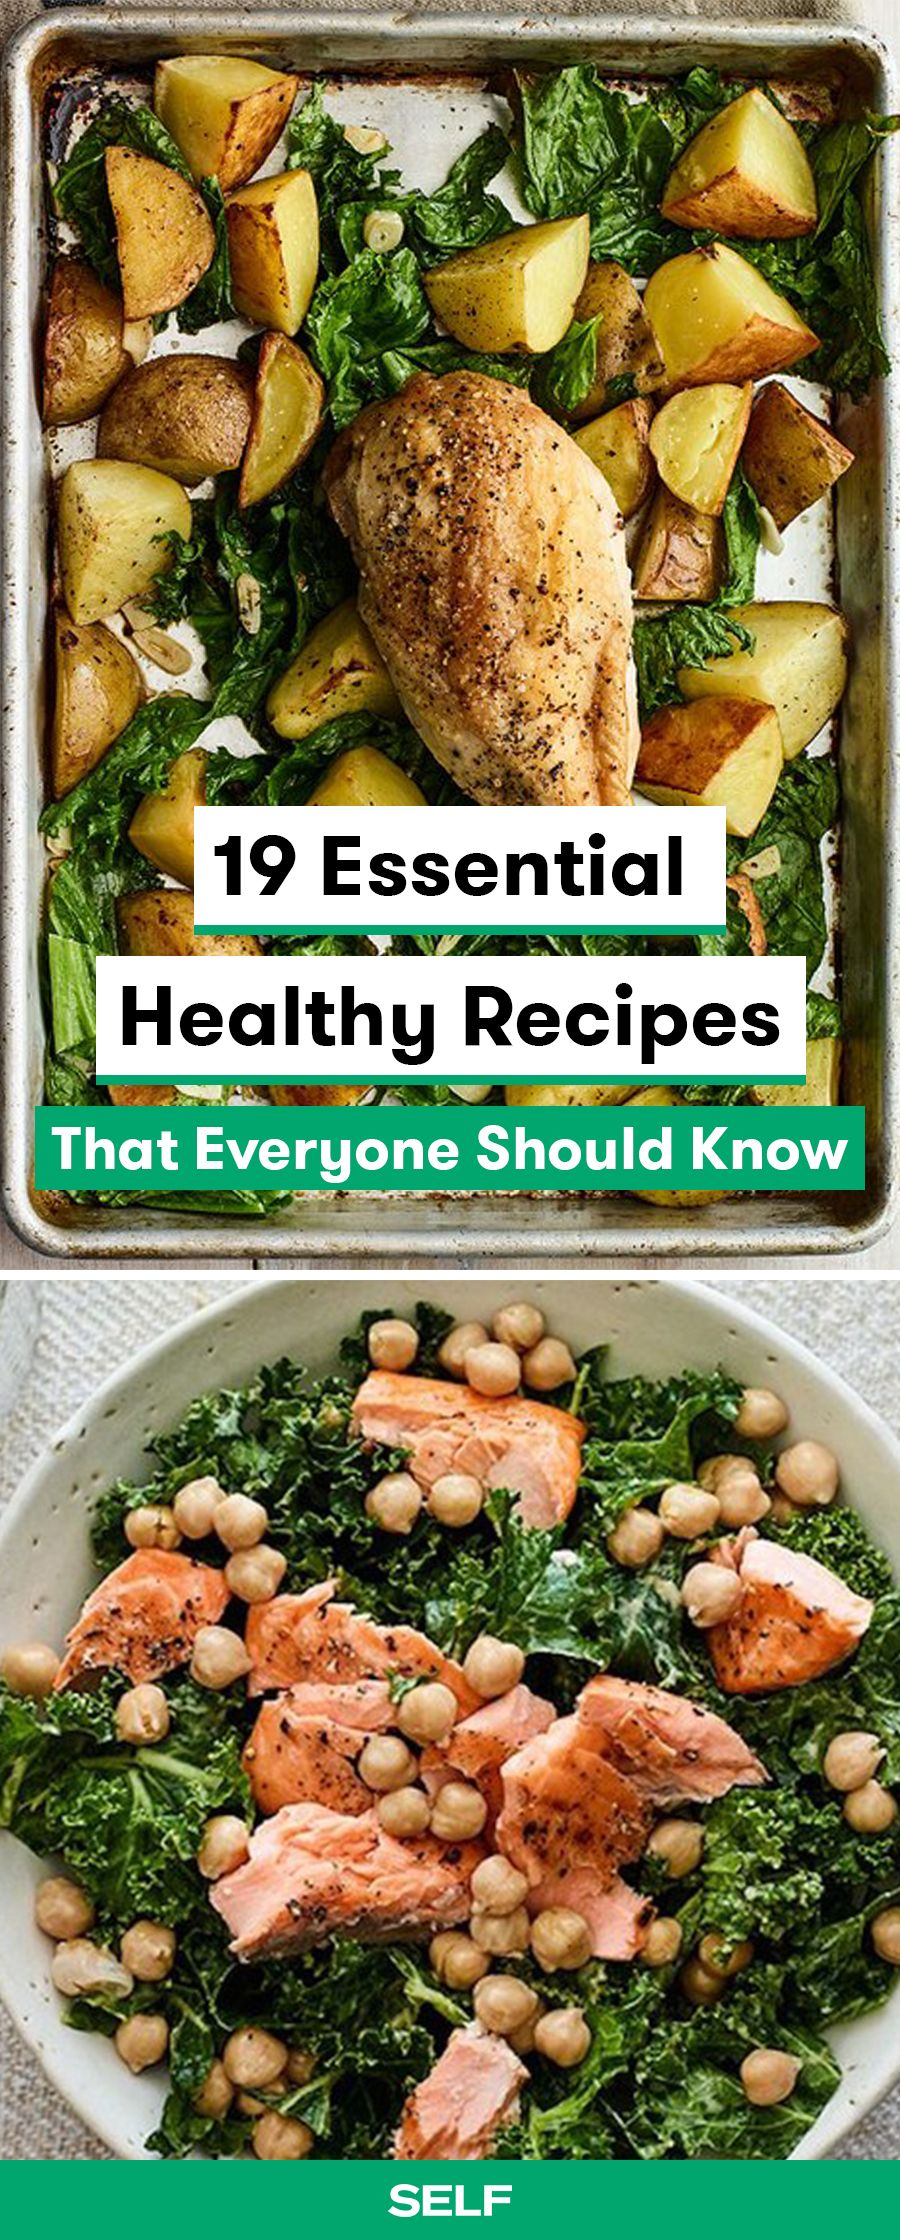 Healthy Cookout Recipes: 21 Healthy Recipes You Should Learn To Cook In Your